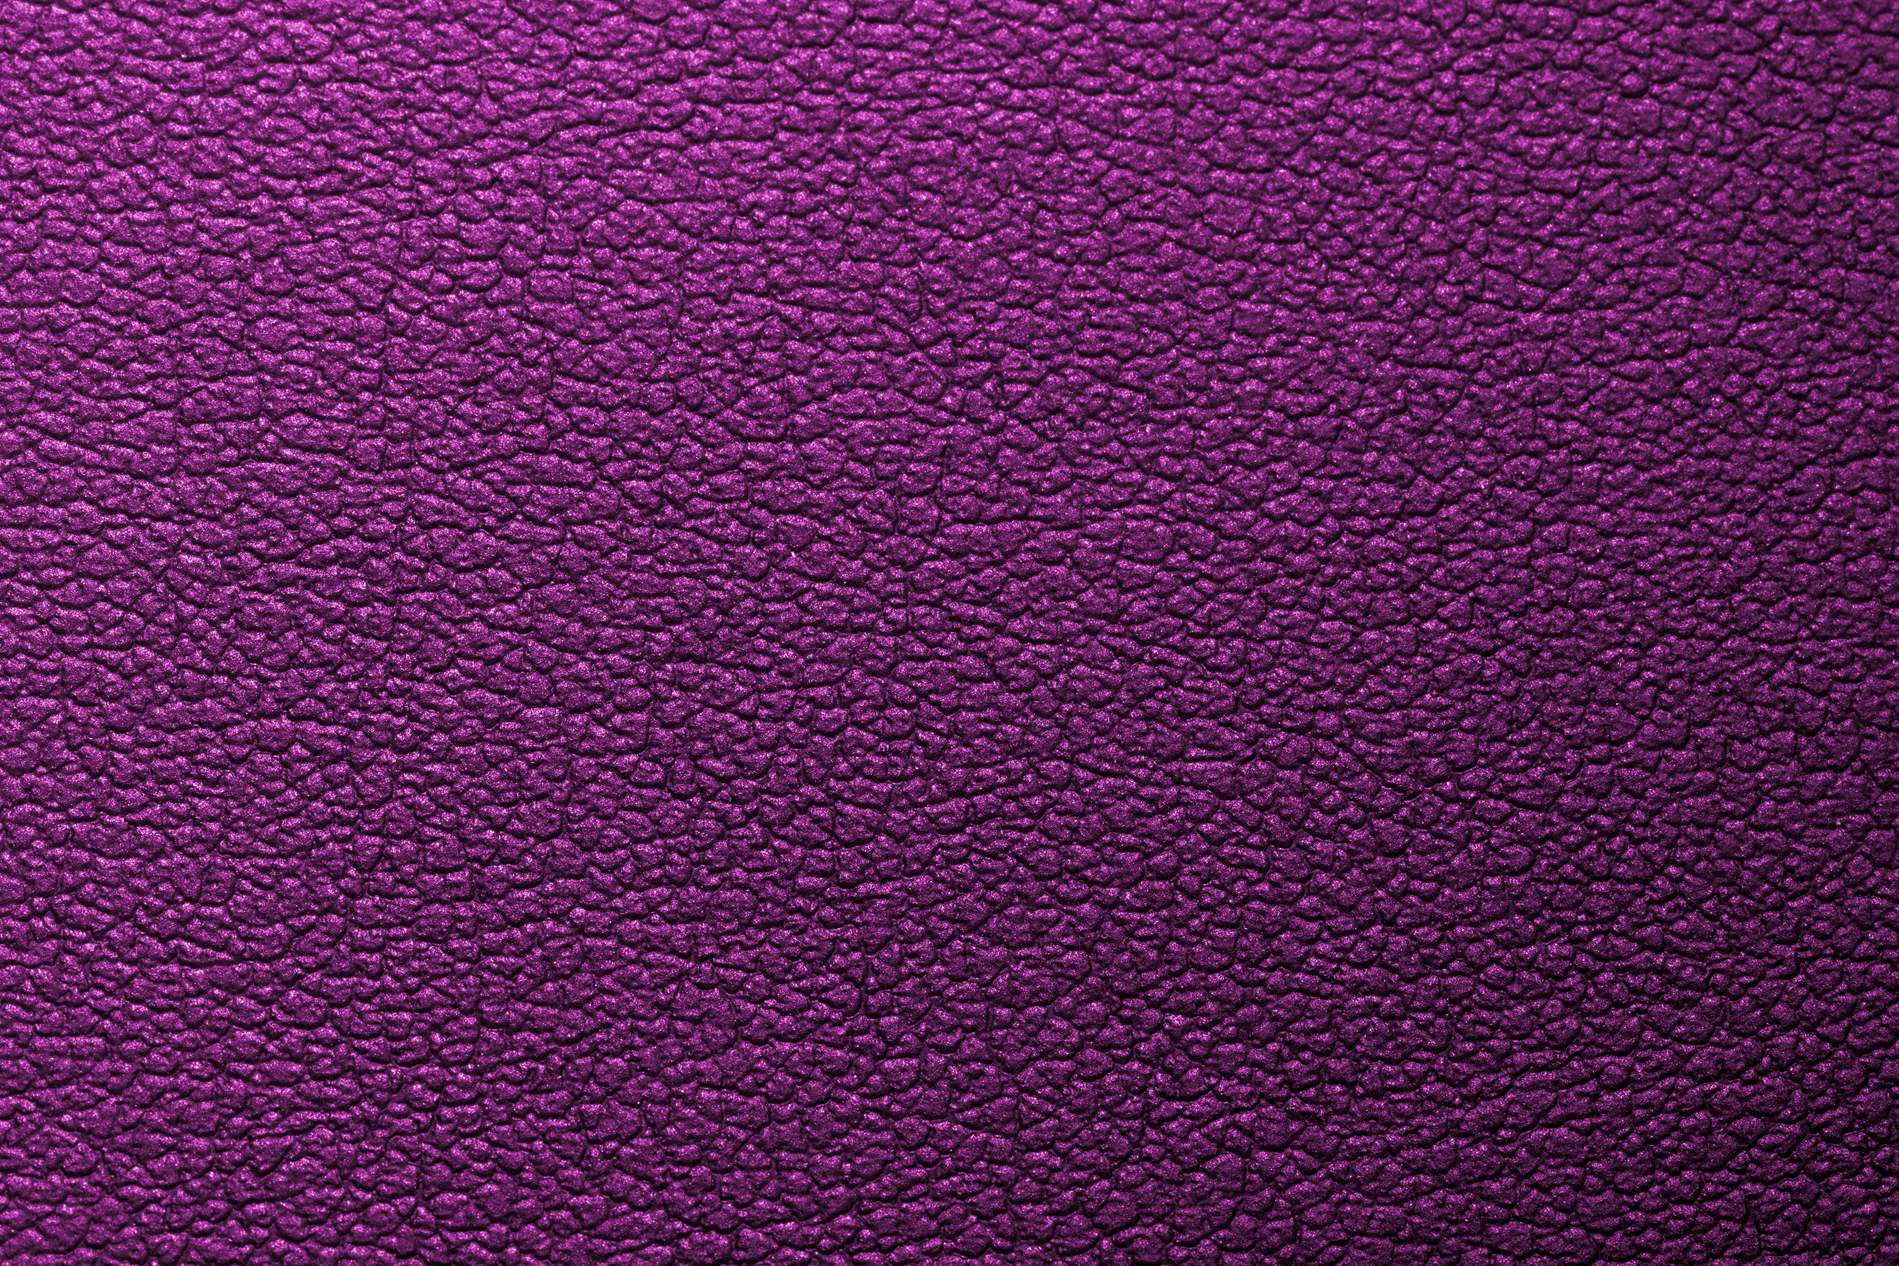 colorful carpet texture background - photo #25